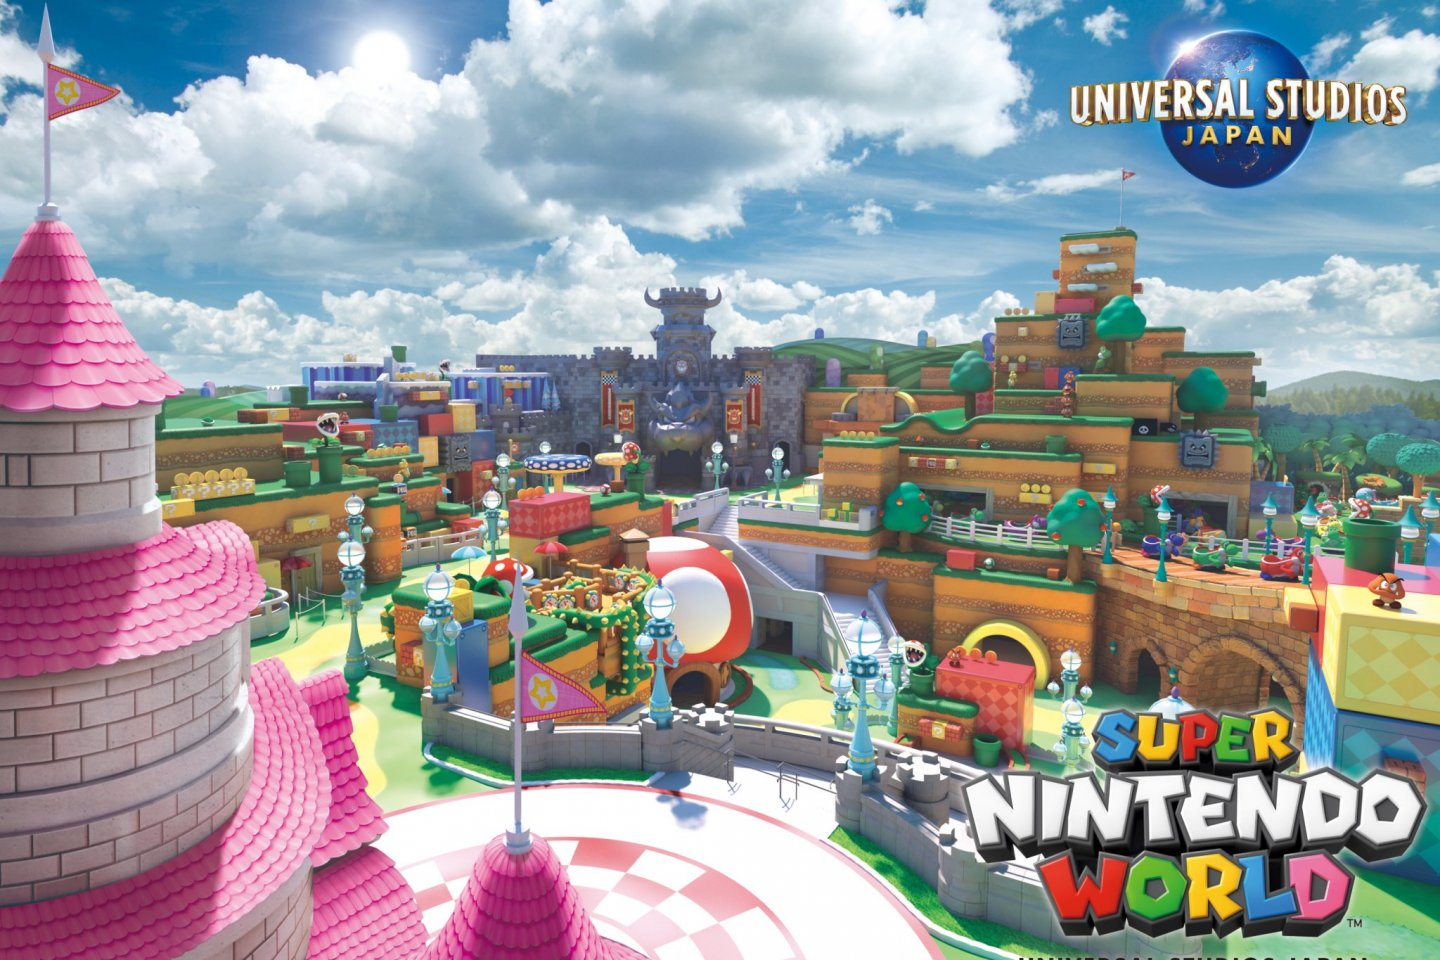 Concept art of the multi-level Super Nintendo World